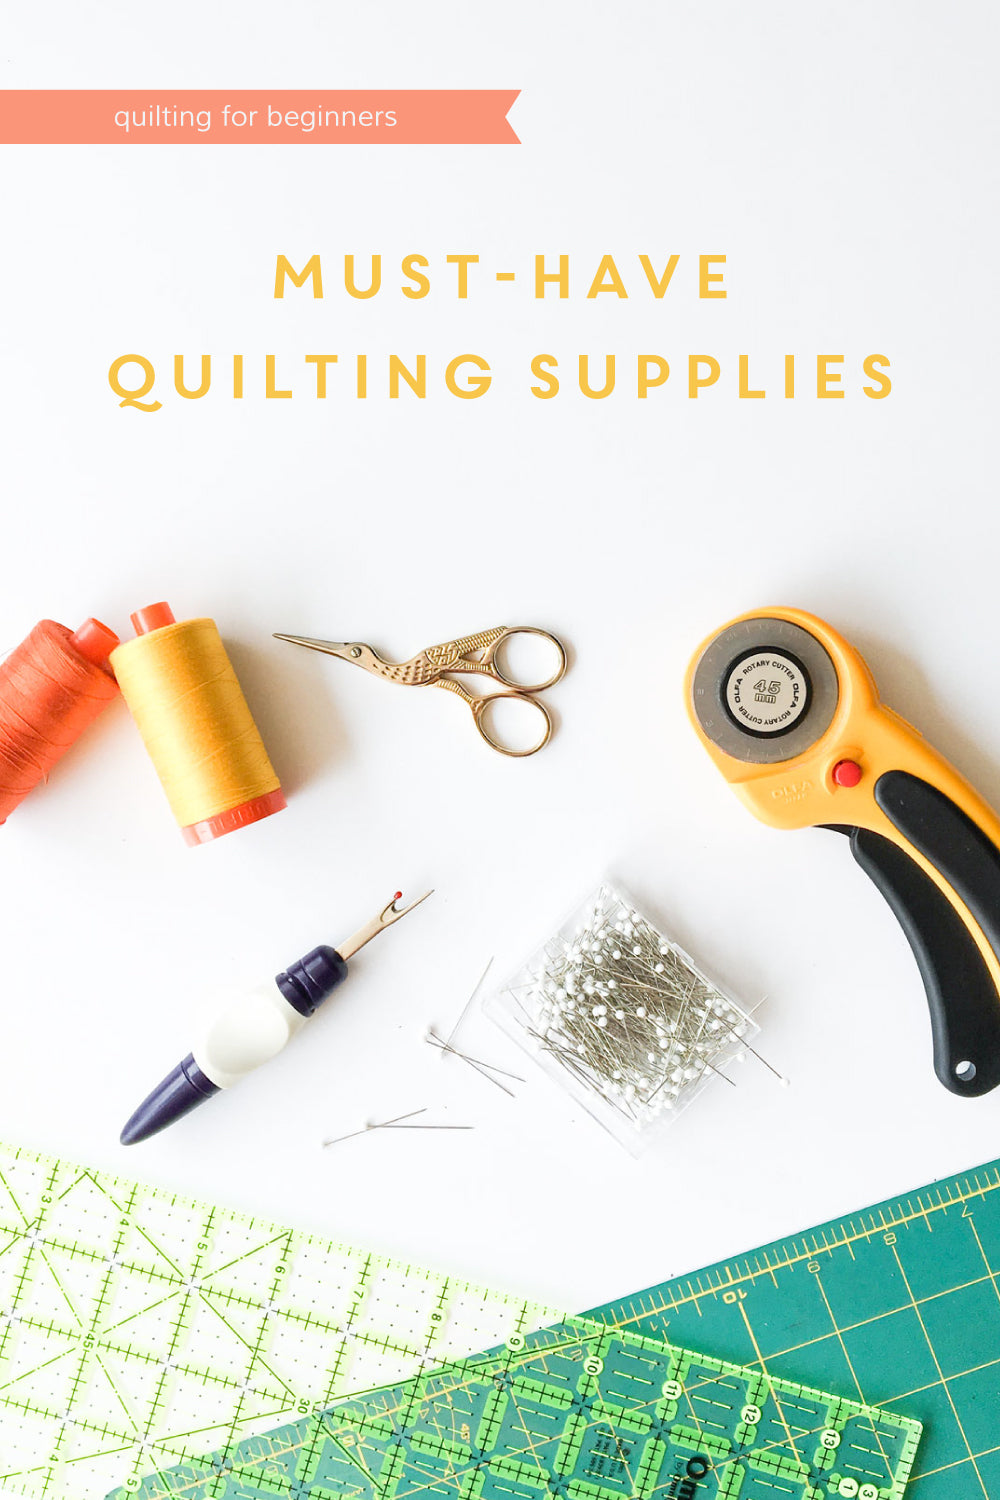 Quilting for Beginners: The must-have quilting supplies every beginner quilter should have!